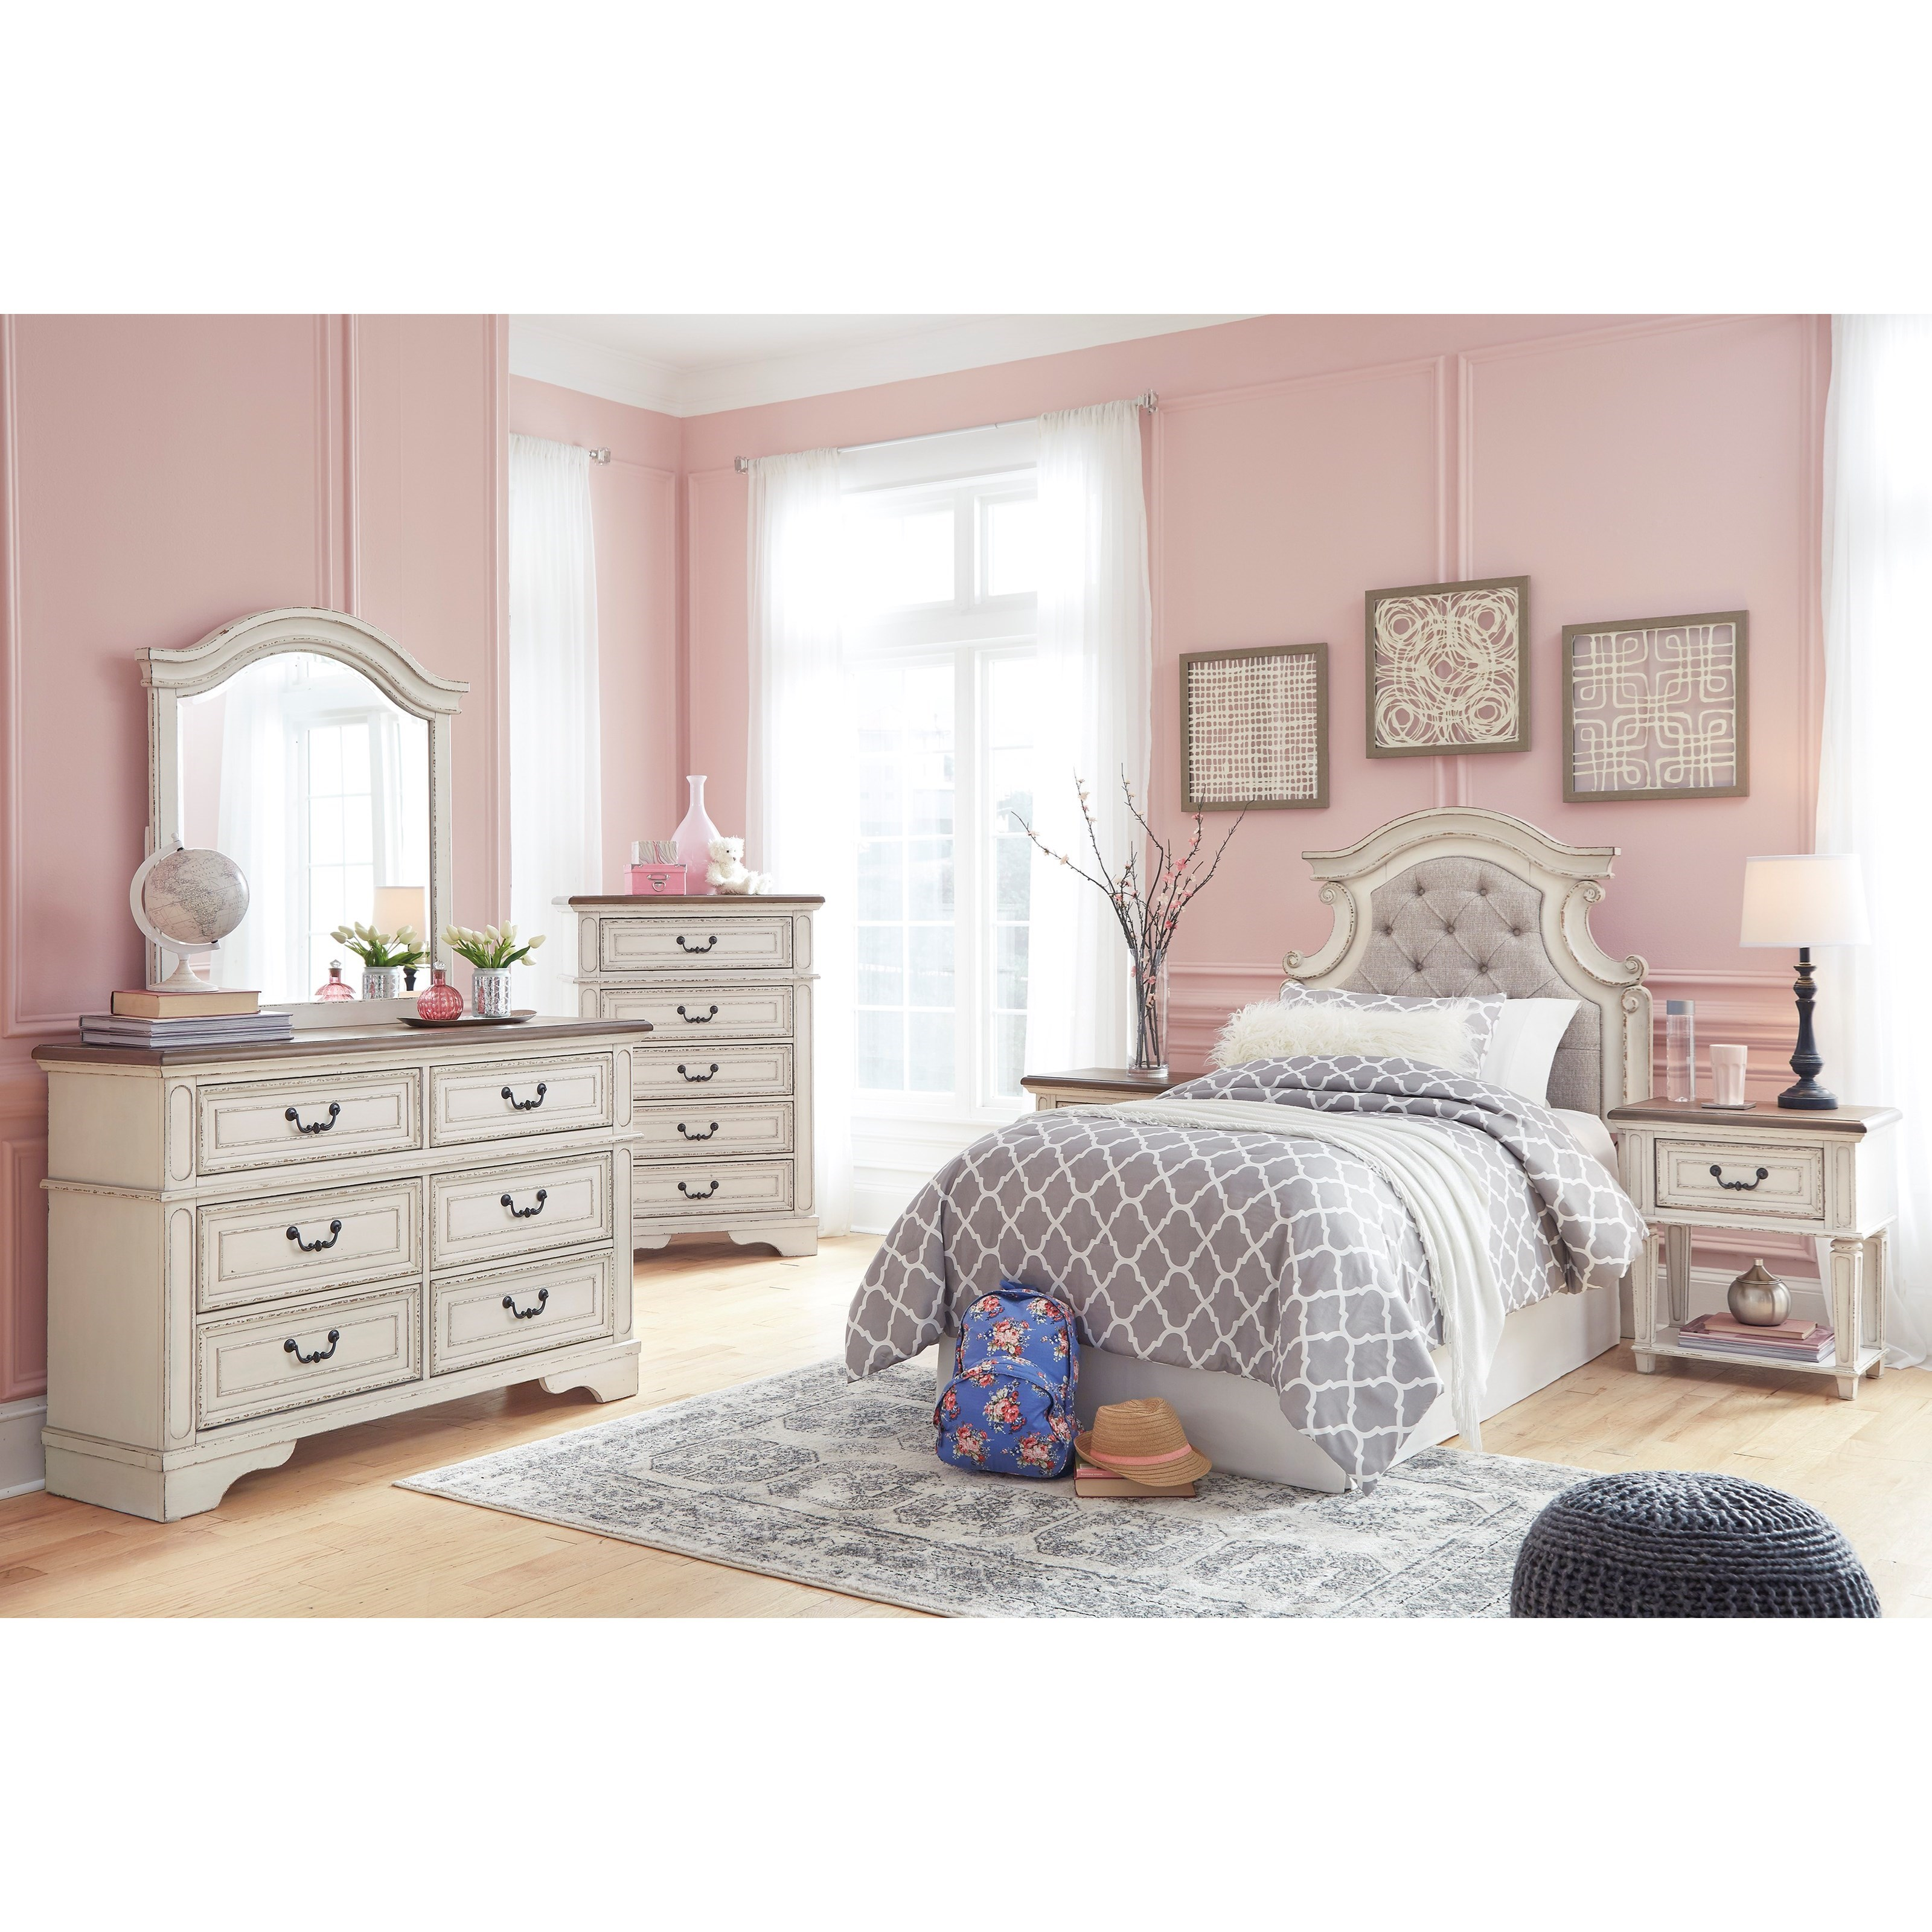 signature design by ashley realyn twin bedroom group household furniture bedroom groups. Black Bedroom Furniture Sets. Home Design Ideas